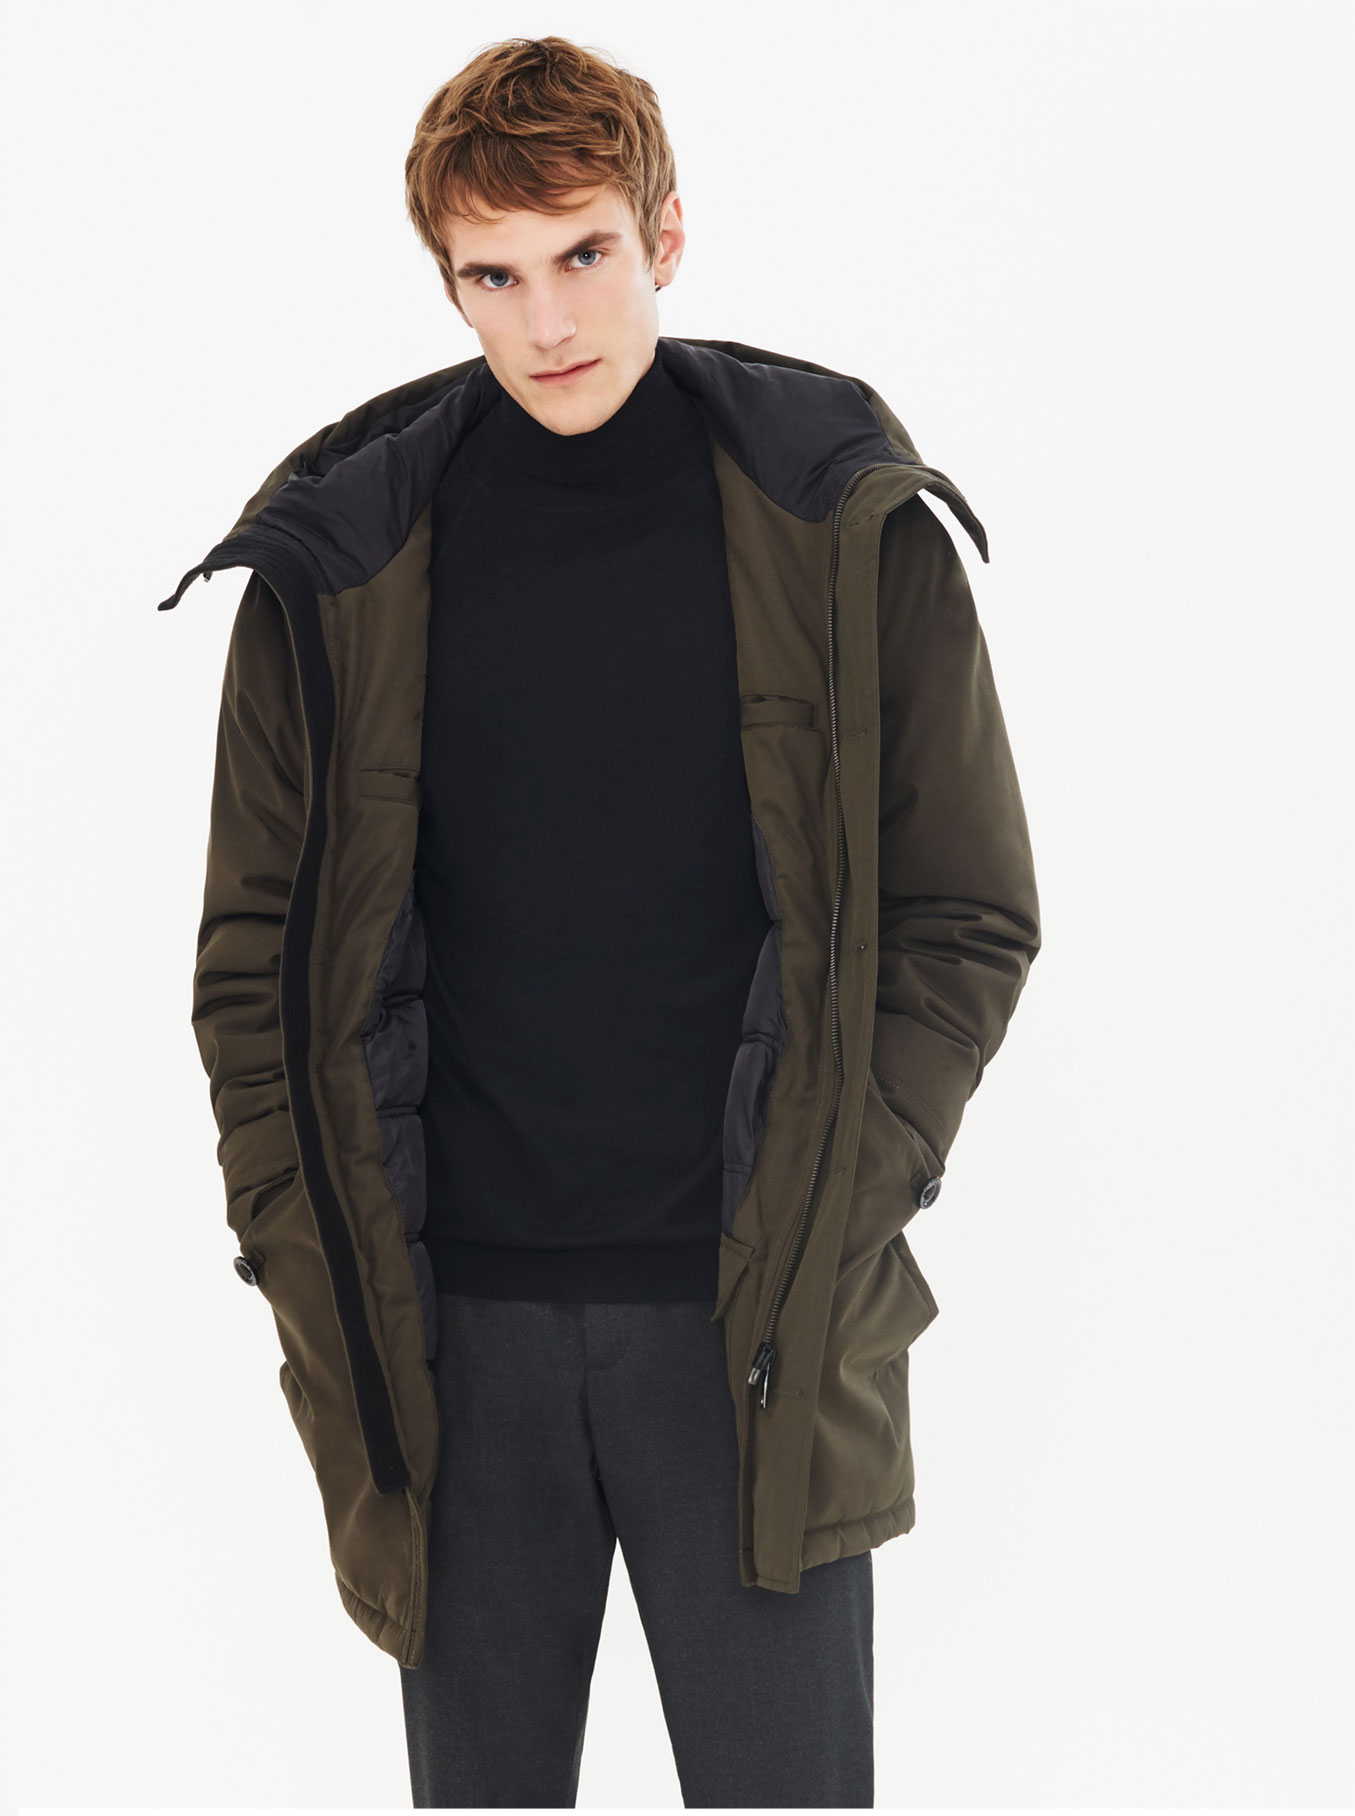 It's Cold Outside: Zara Highlights Winter Coats